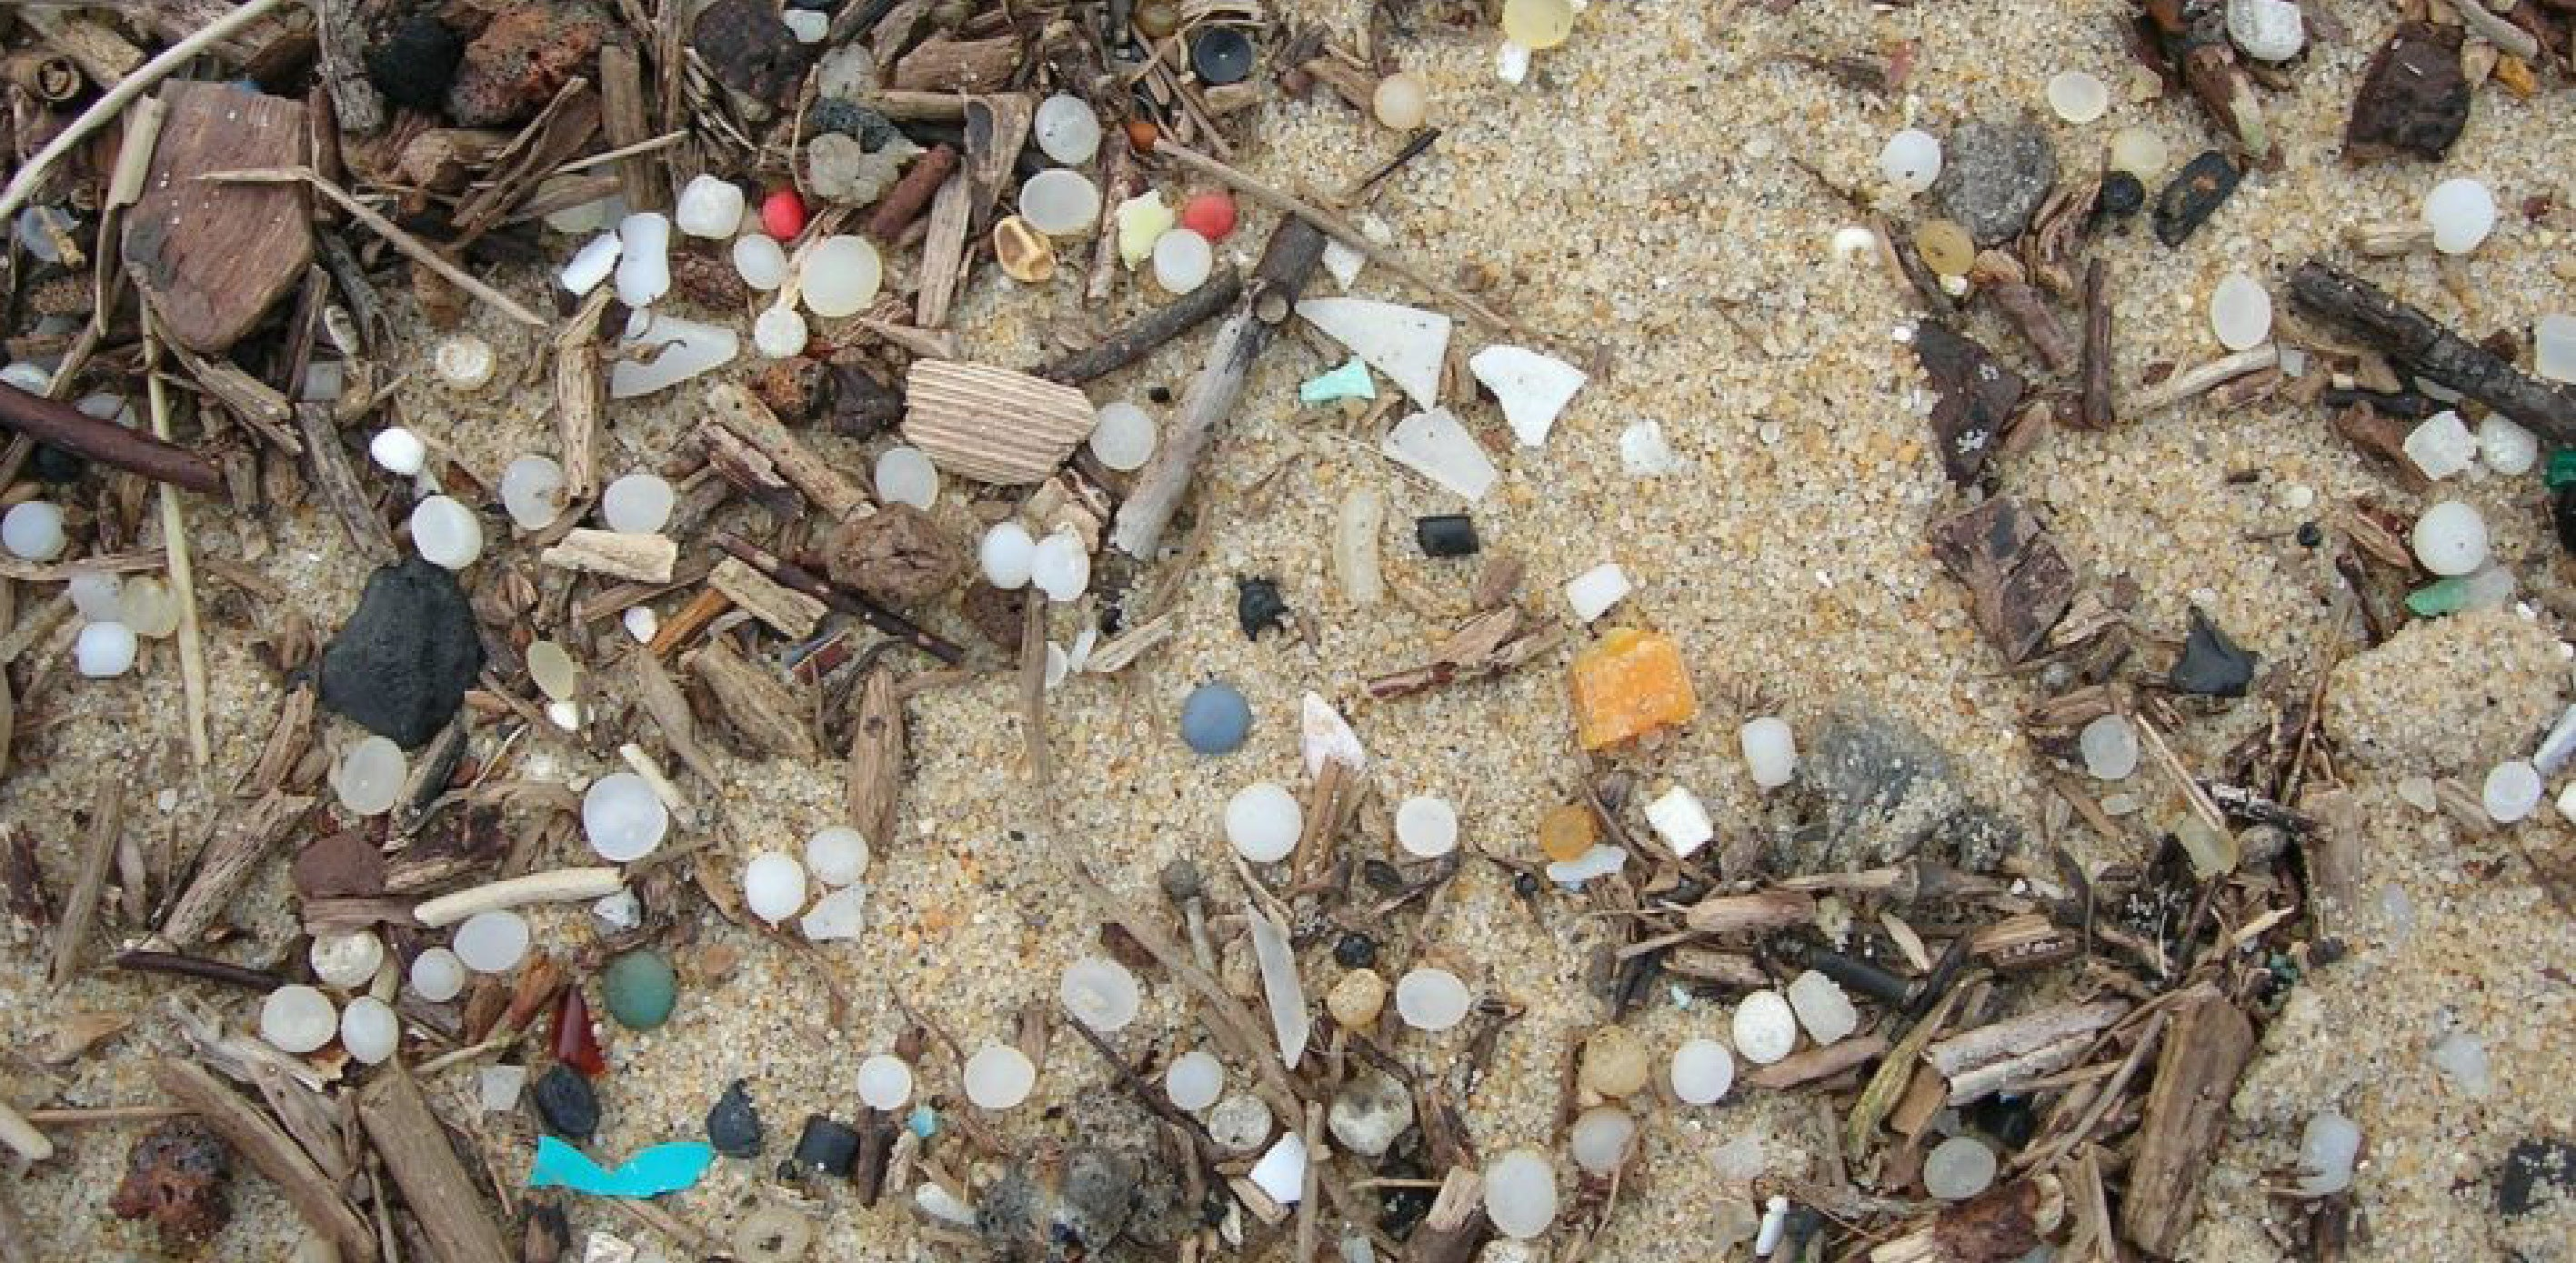 Nurdles - Plastic oceans and beaches